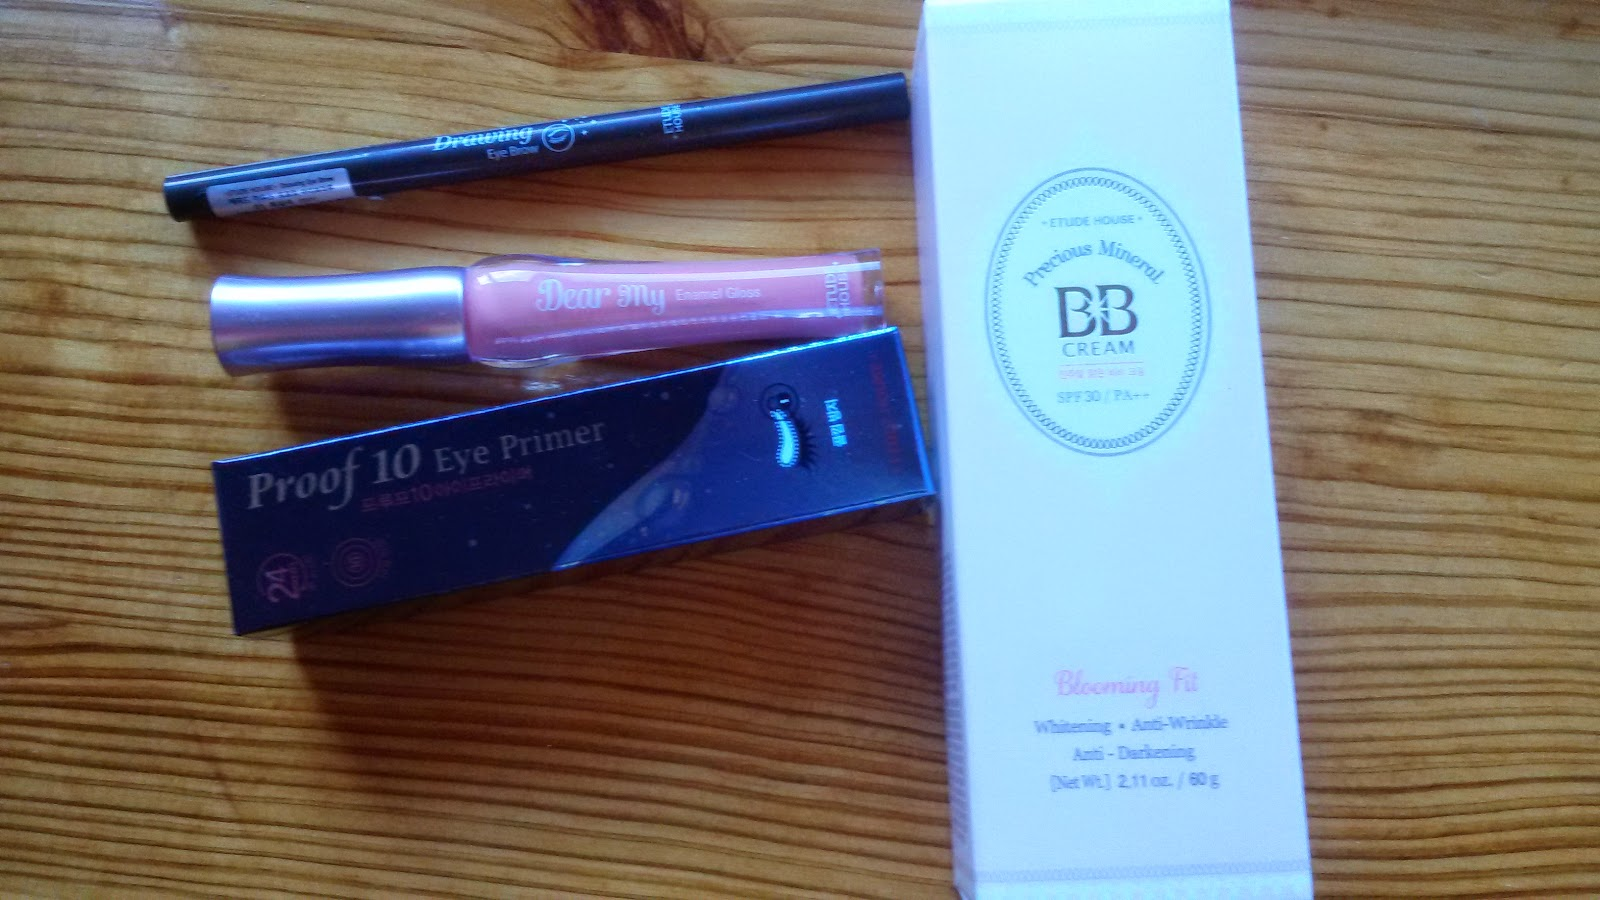 Precious Mineral BB cream Blooming fit